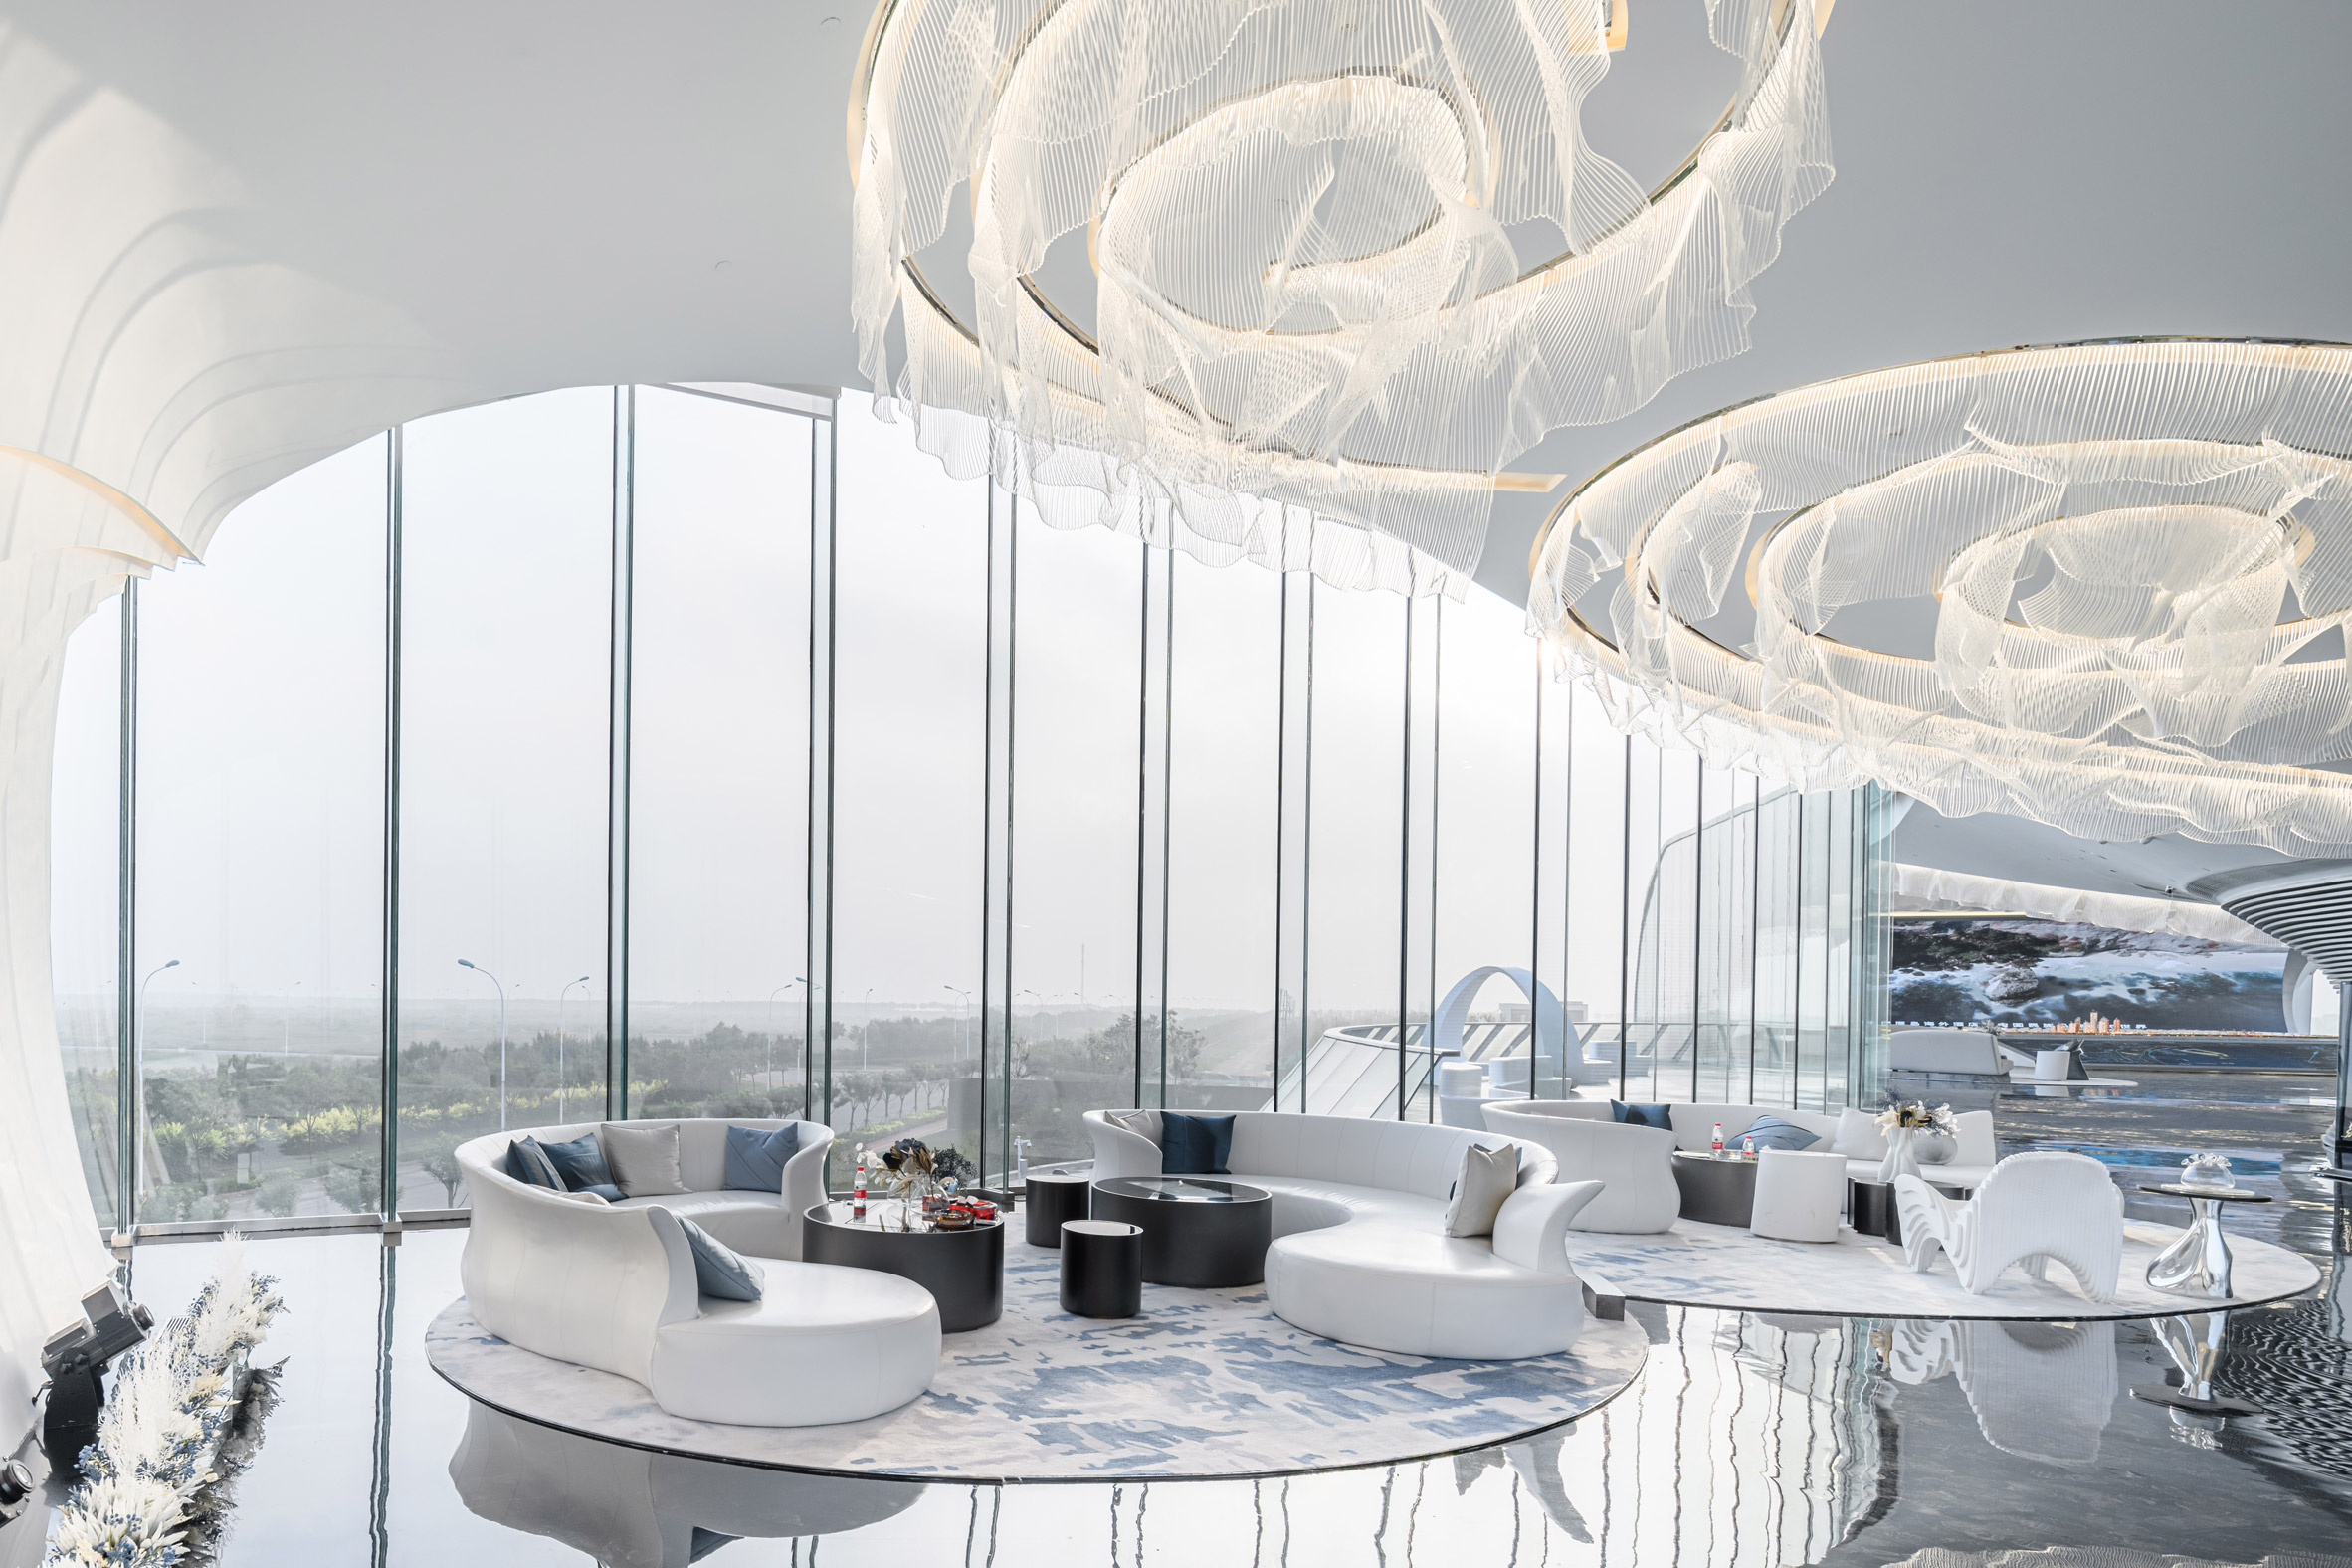 Interiors of The Wave by Lacime Architects in Tianjin, China